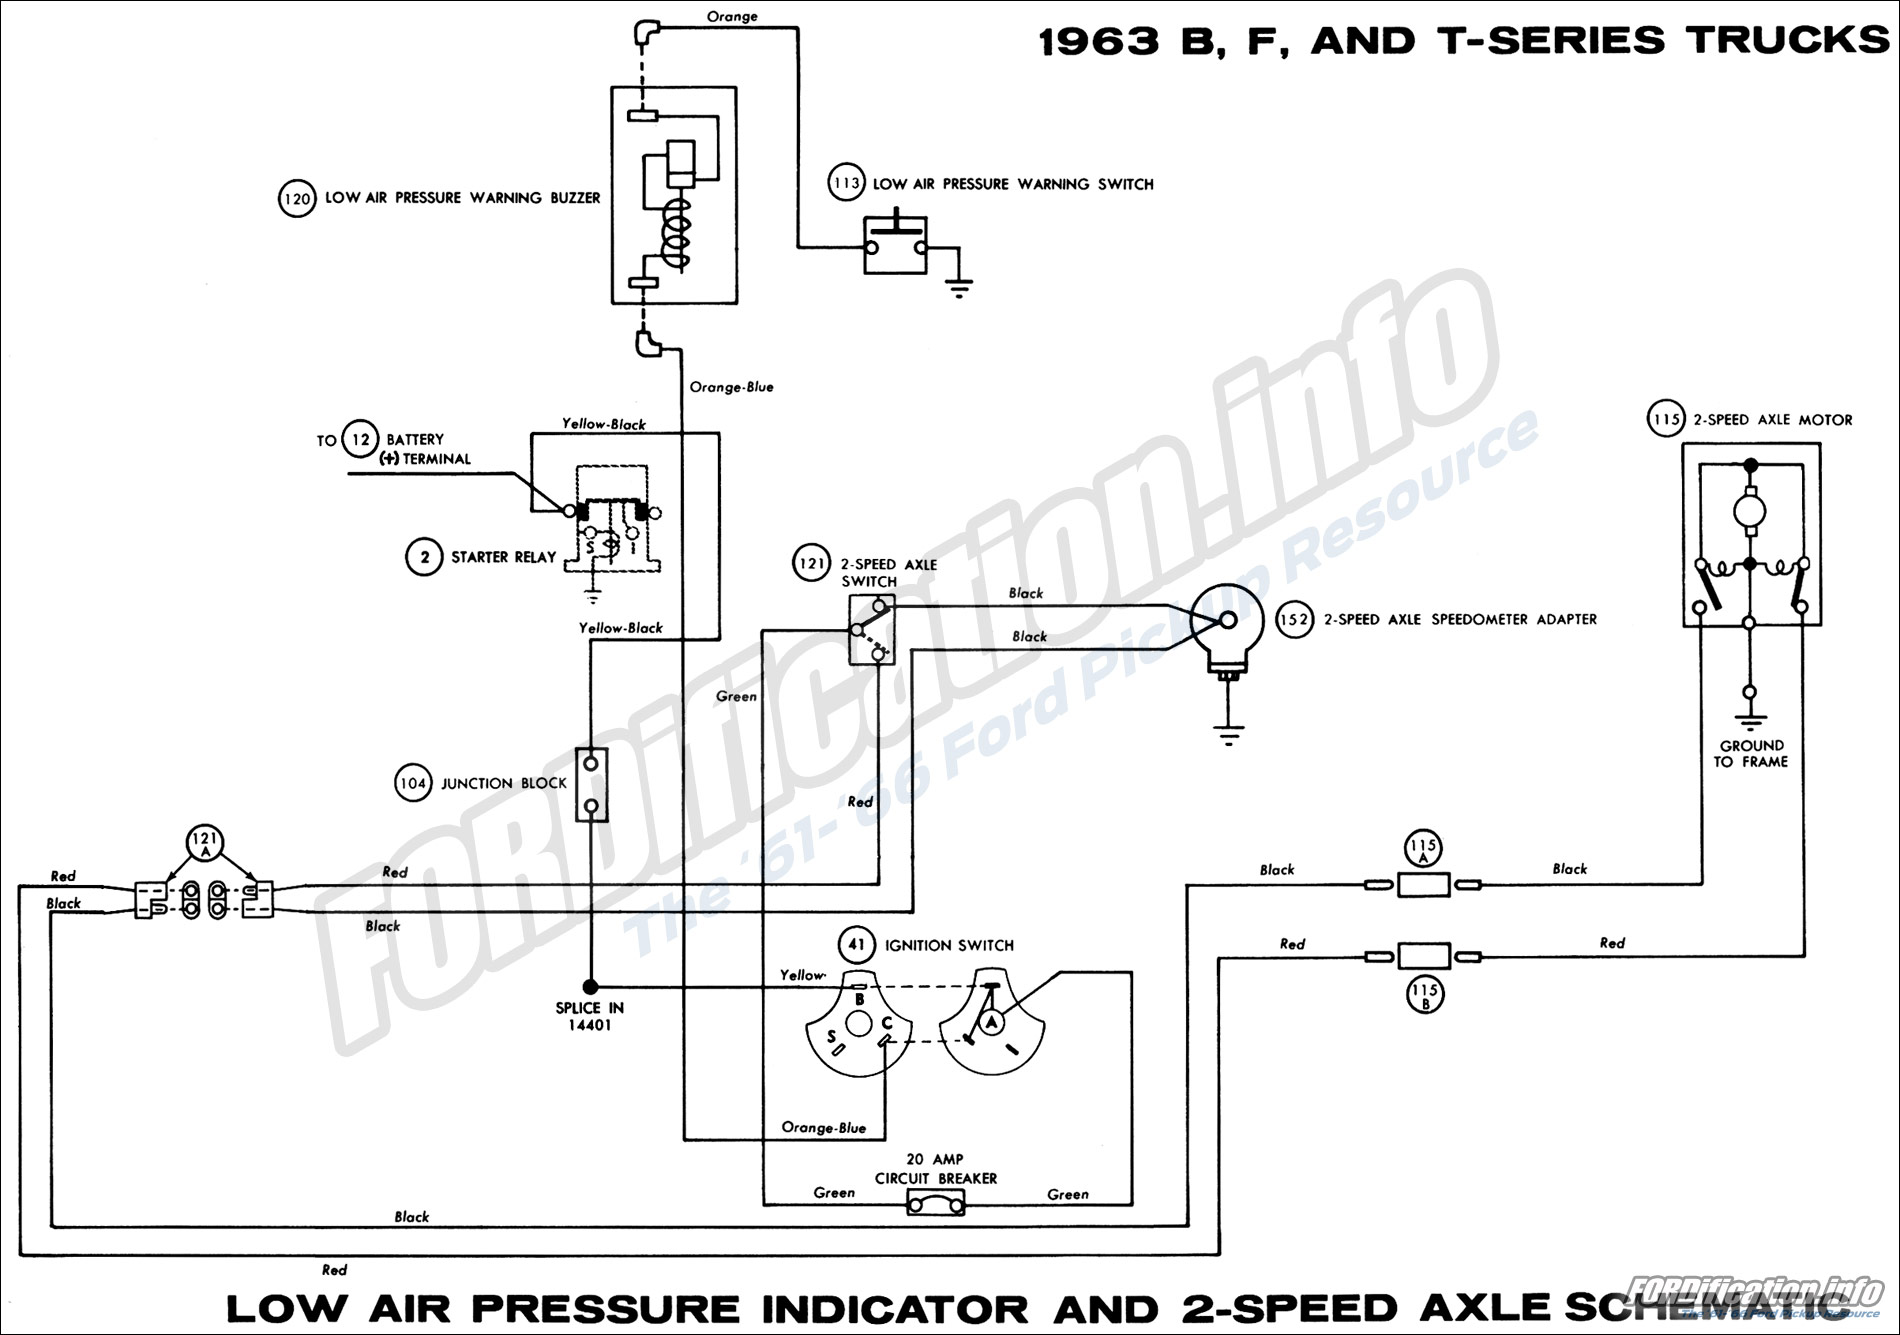 For a jd 410b wiring diagram wiring diagram fantastic videx wiring diagram component electrical diagram ideas yj wiring diagram for a jd 410b wiring diagram cheapraybanclubmaster Image collections